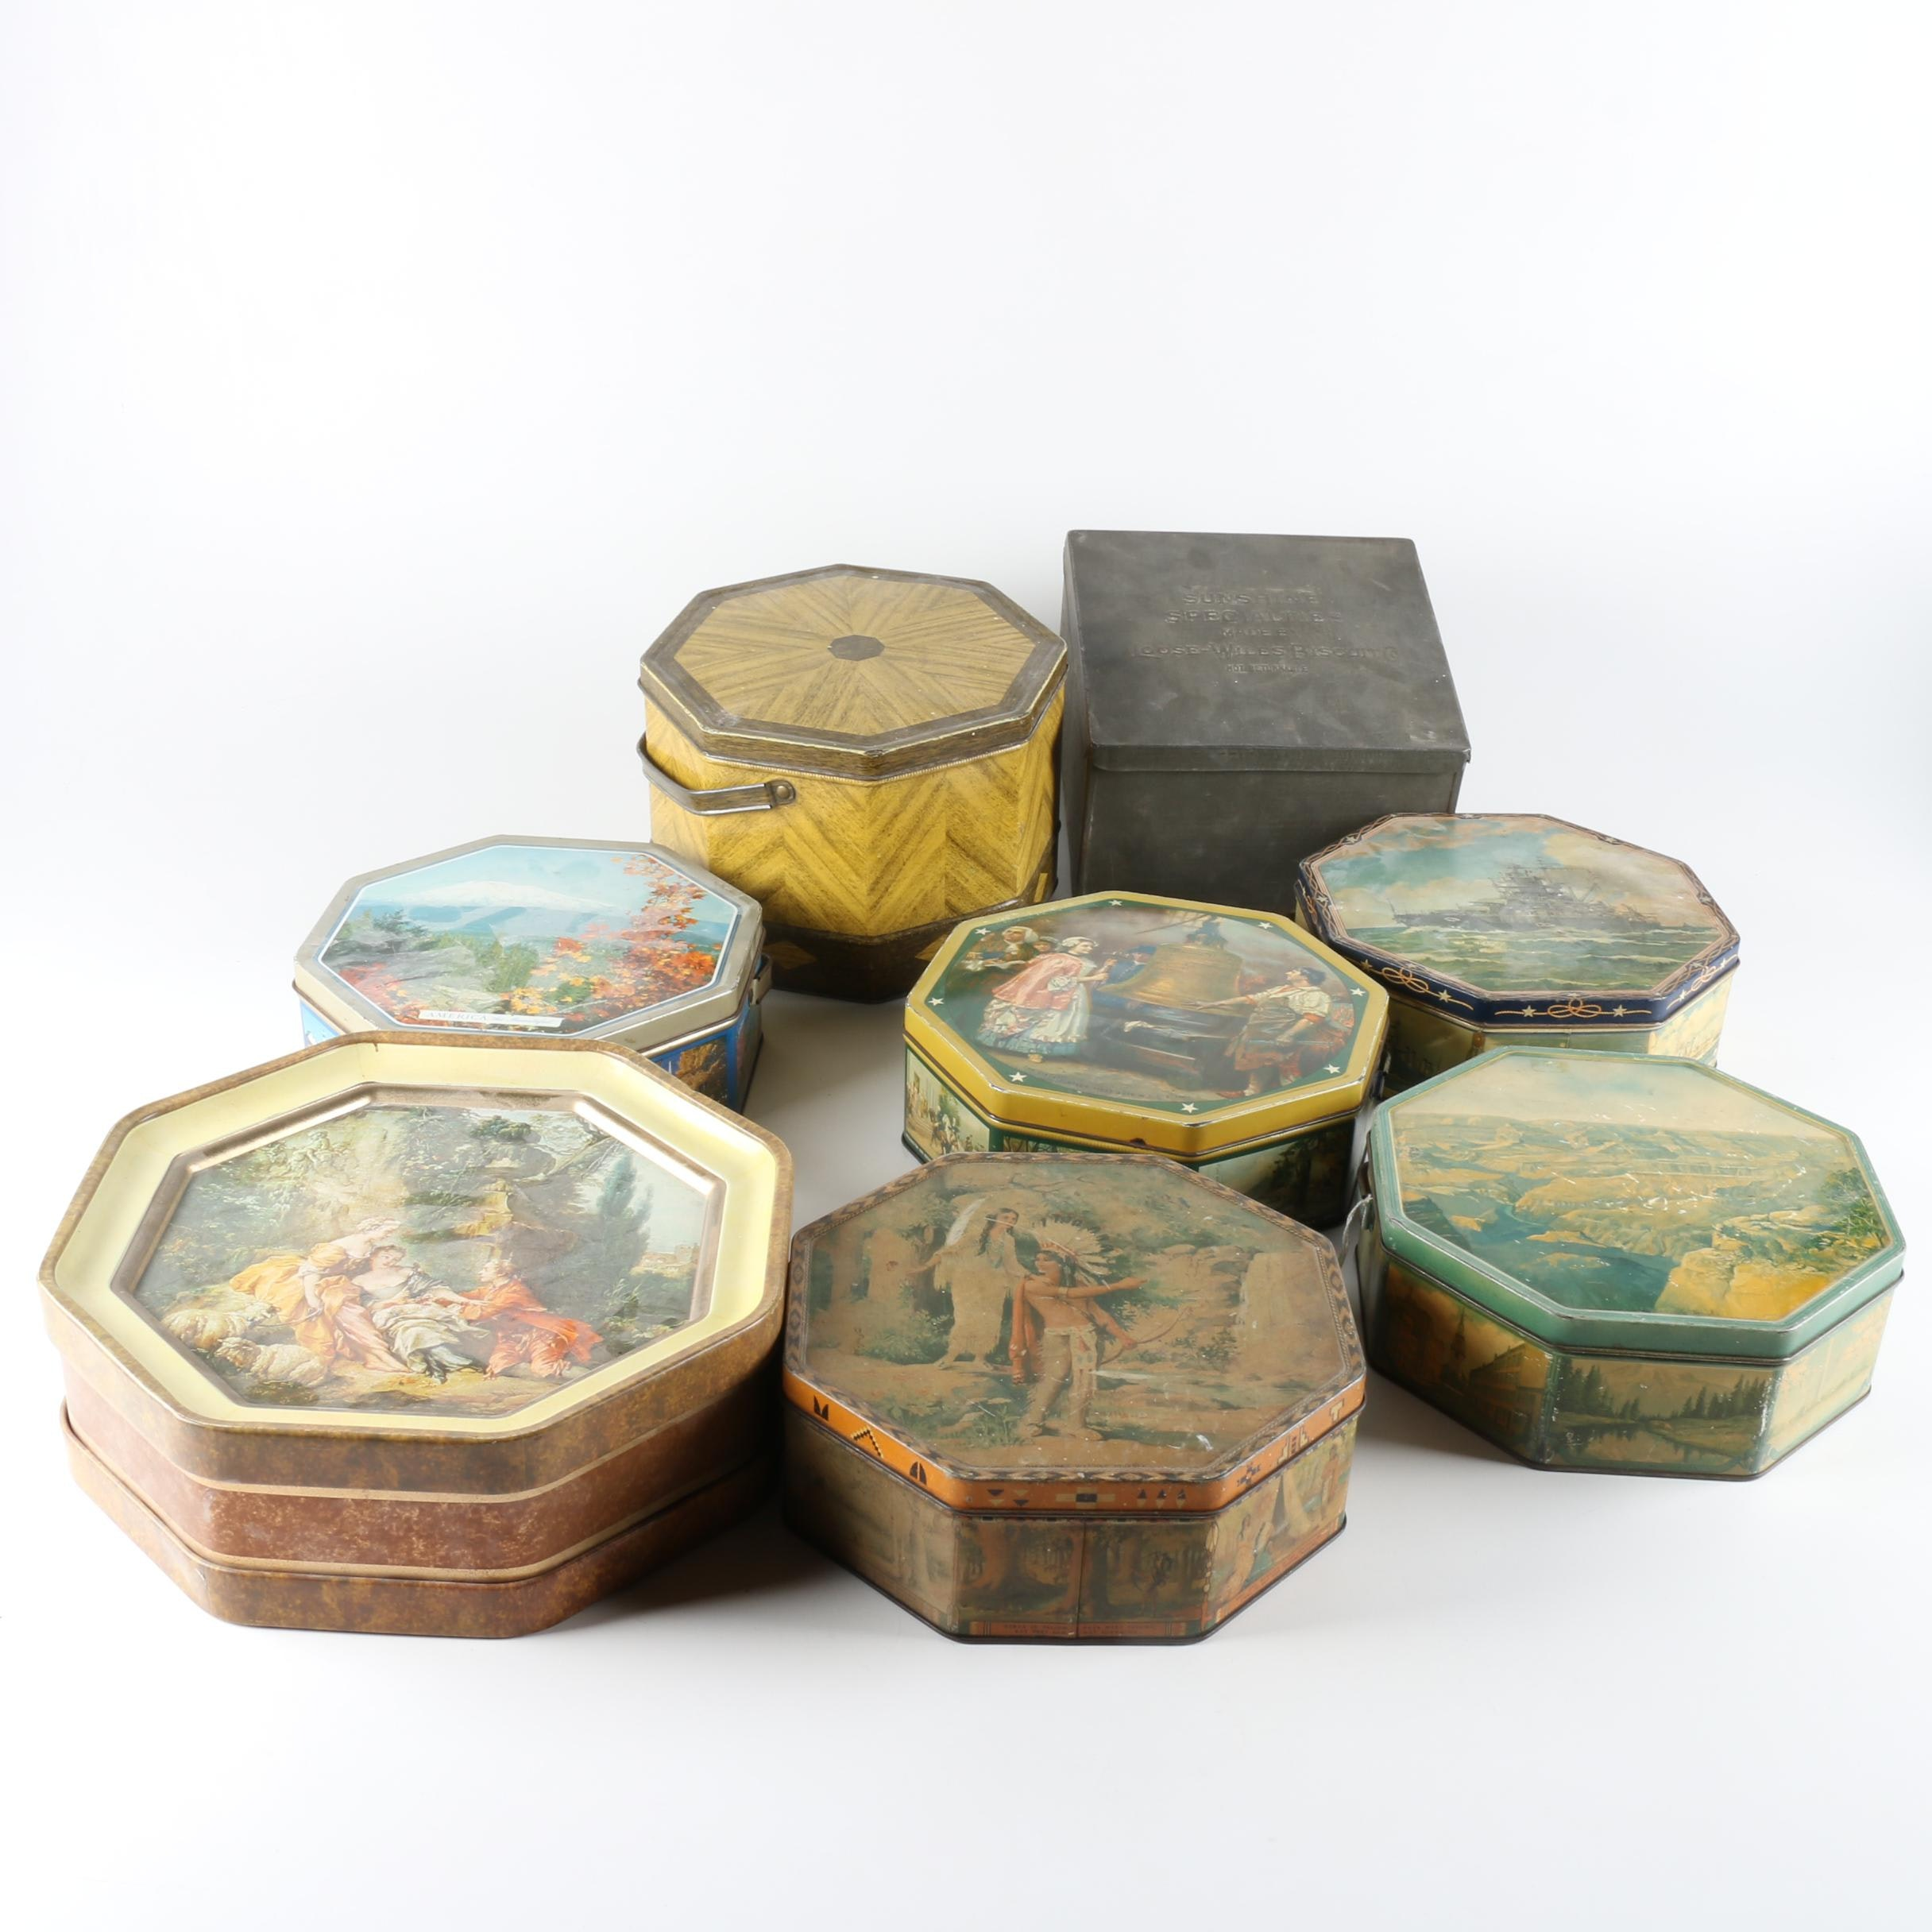 Collection of Vintage Loose Wiles Biscuit Tins